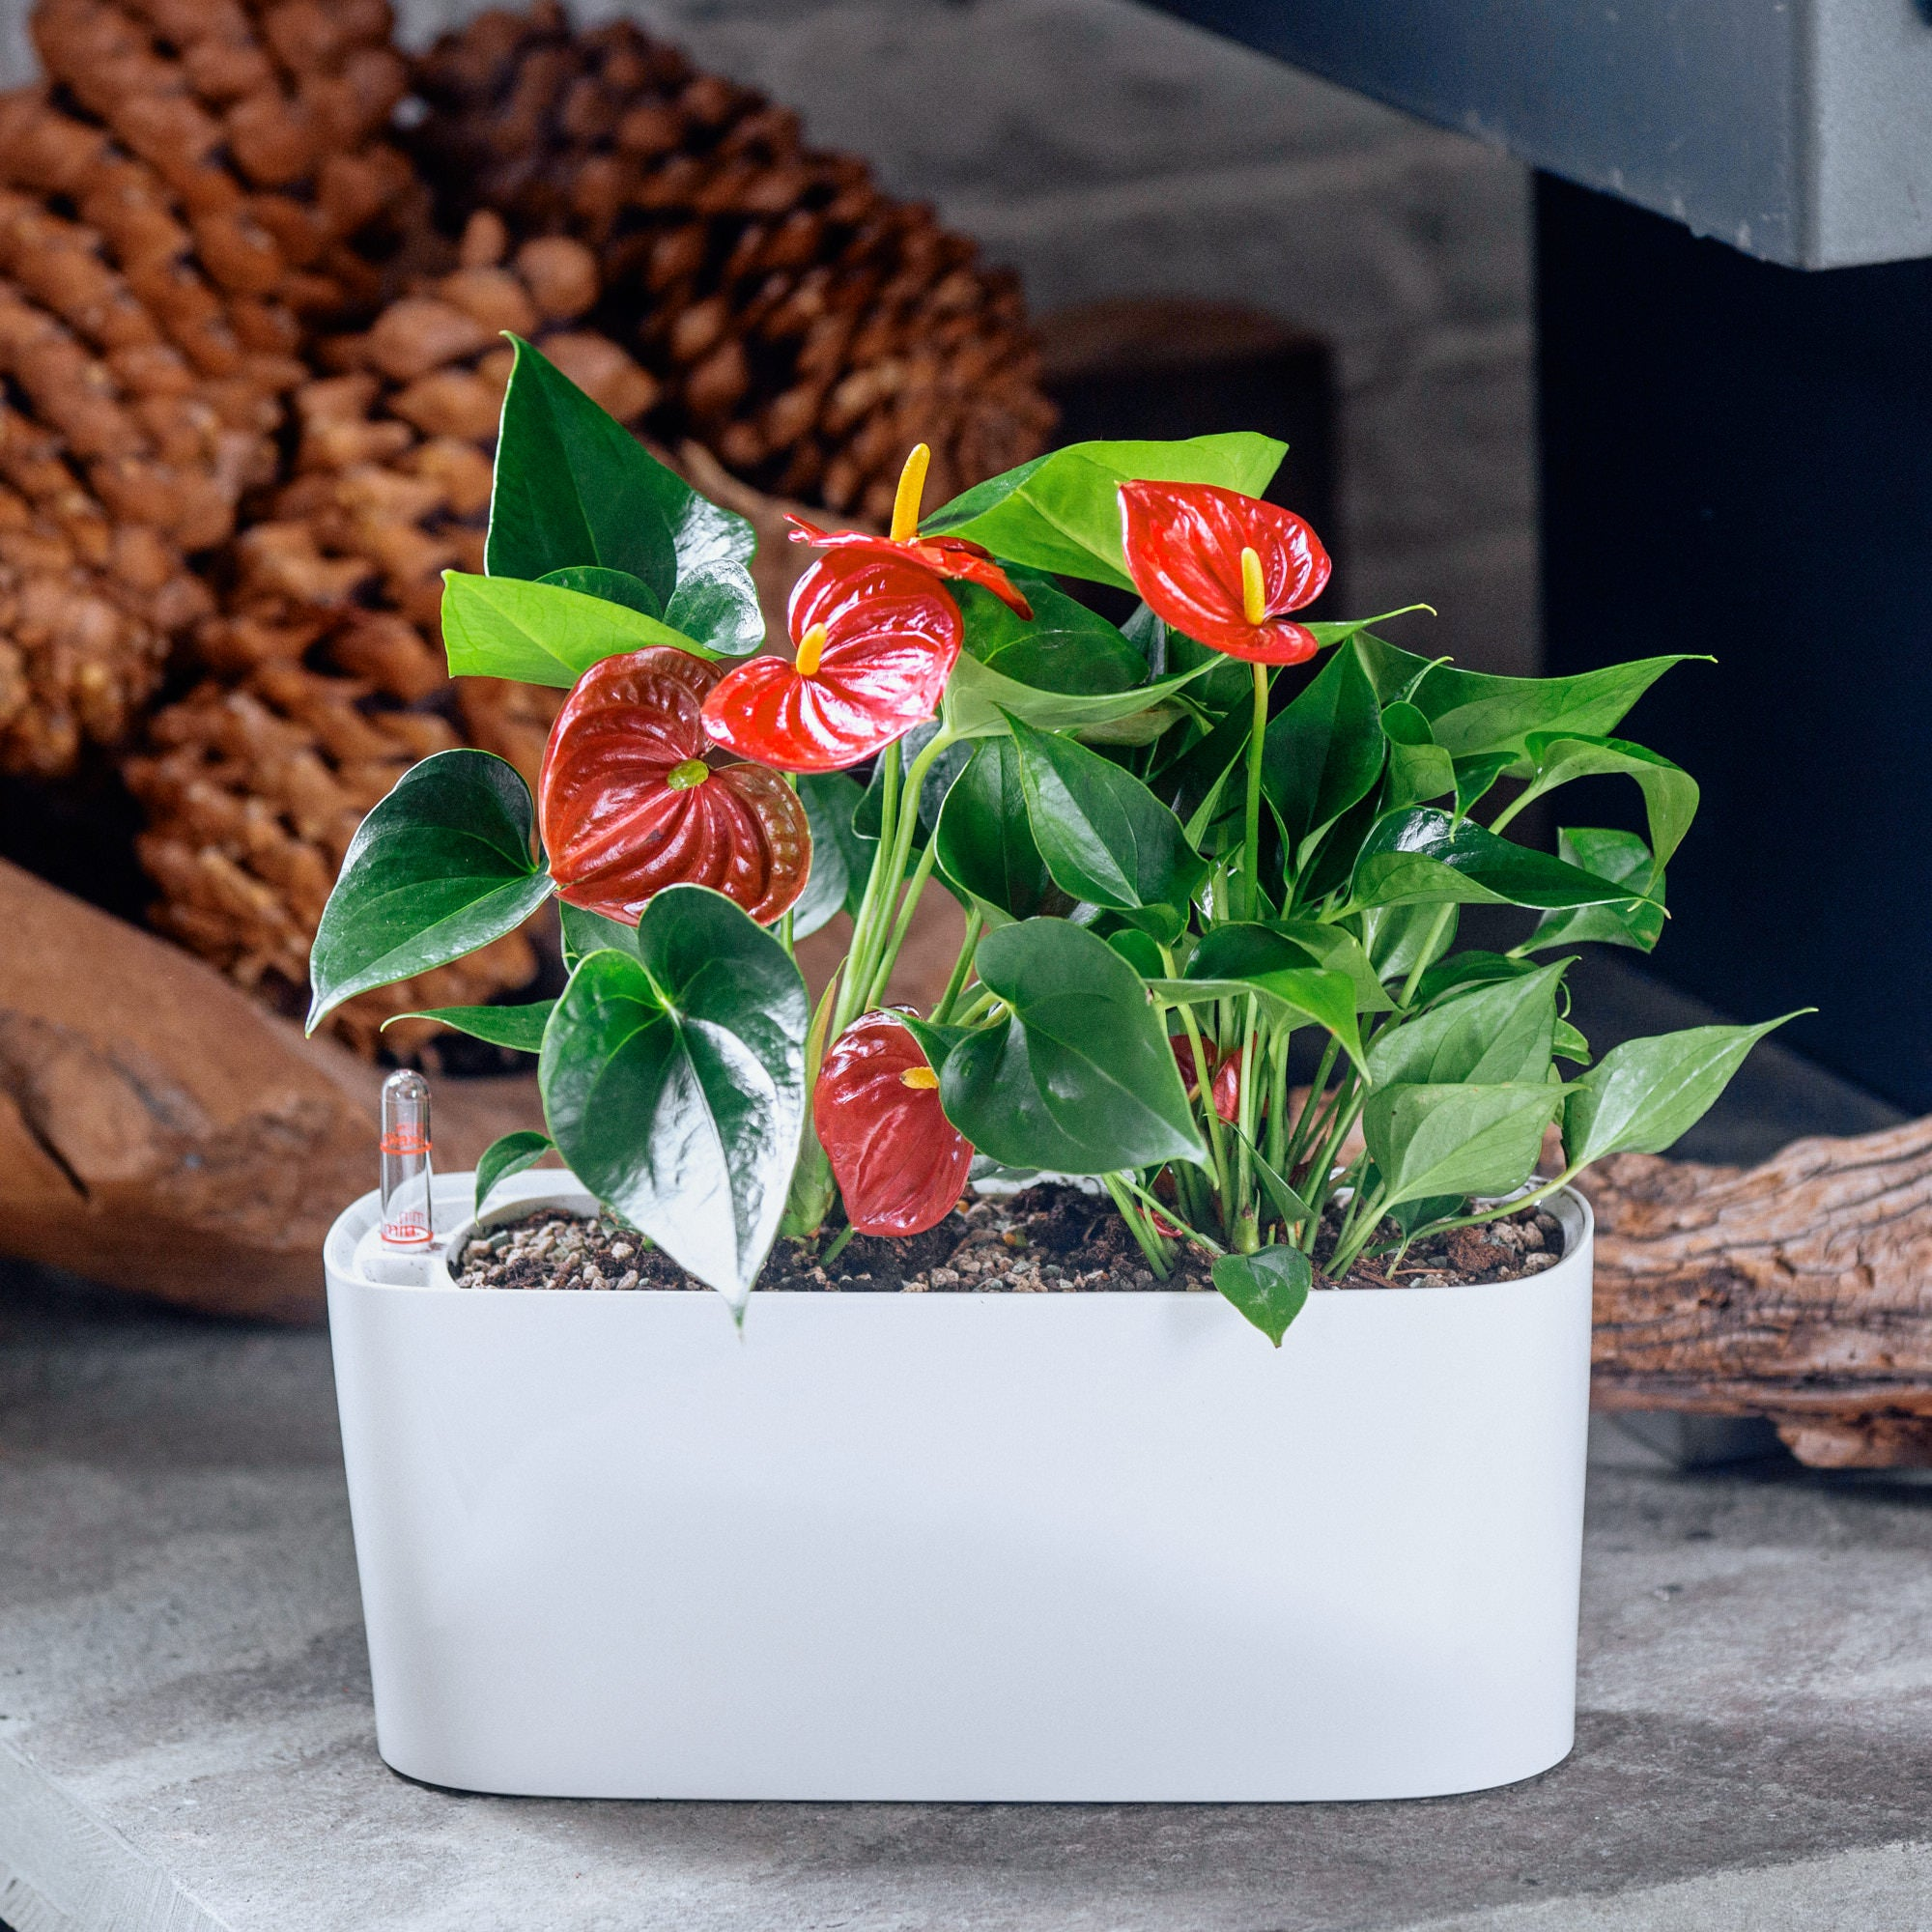 Anthurium potted in Lechuza windowsill mini white planter - My City Plants